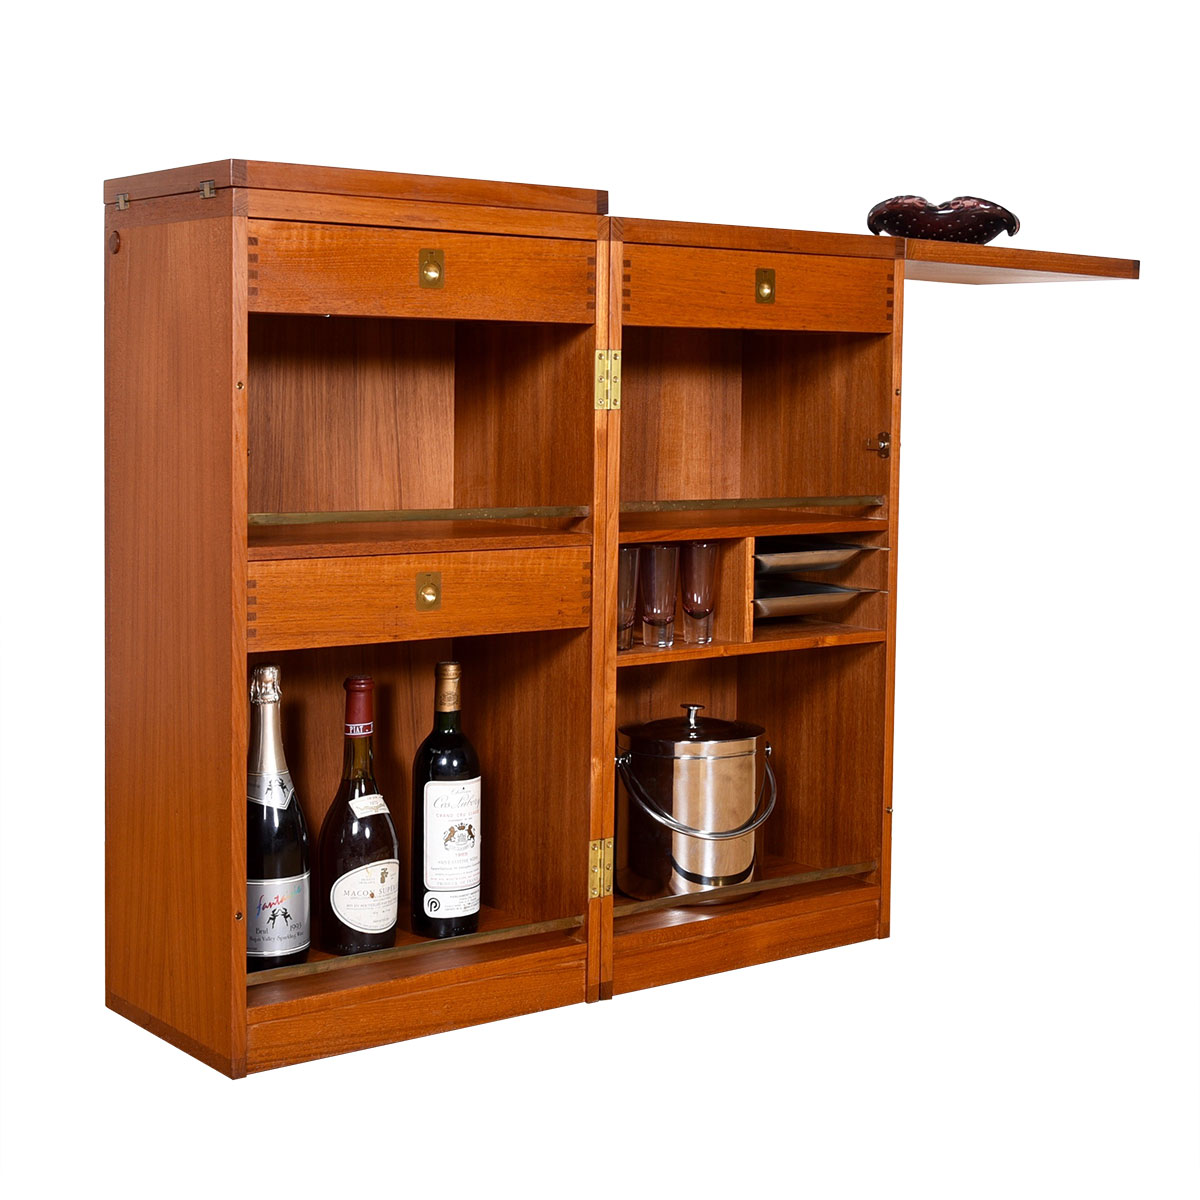 Danish Teak Captain's Expanding 'Book Bar' / Storage Cabinet by Dyrlund